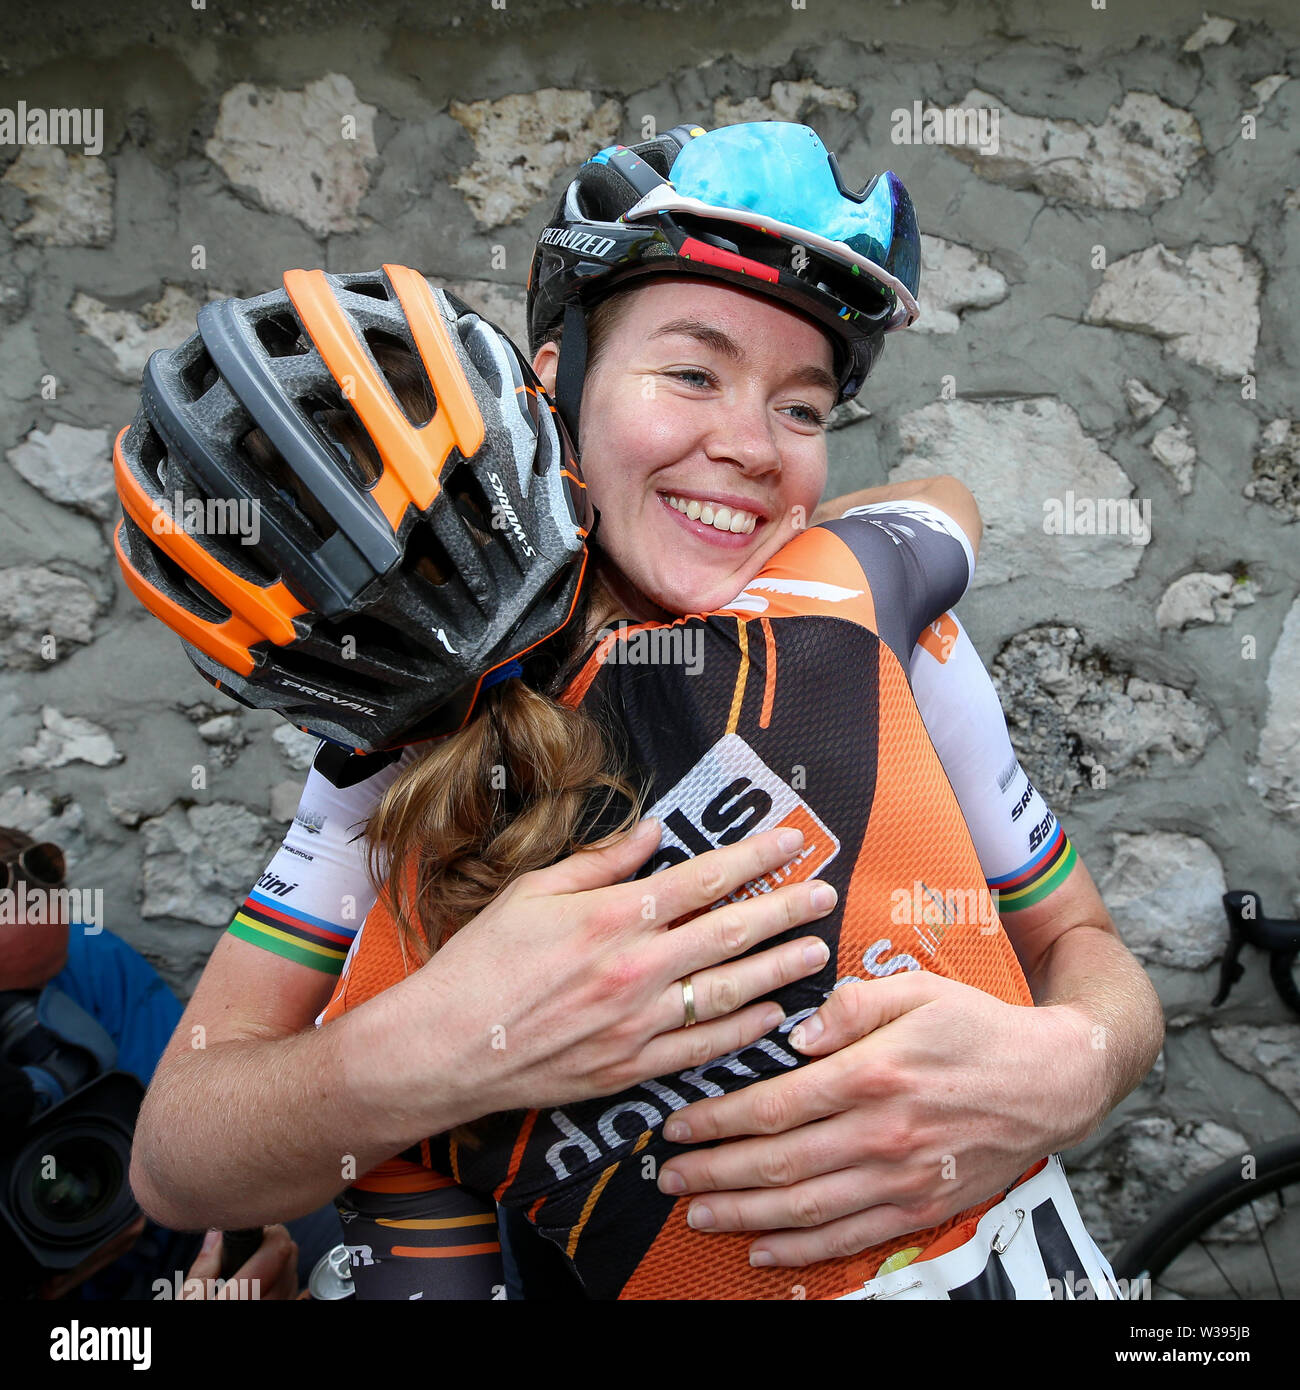 Chiusaforte/Malga Montasio - 13-07-2019, cycling, Stage 9, etappe 9 Gemona - Chiusaforte/Malga Montasio, giro rosa, Anna van der Breggen wins stage 9 of Giro Rosa and celebrates with teammate Katie hall Credit: Pro Shots/Alamy Live News - Stock Image